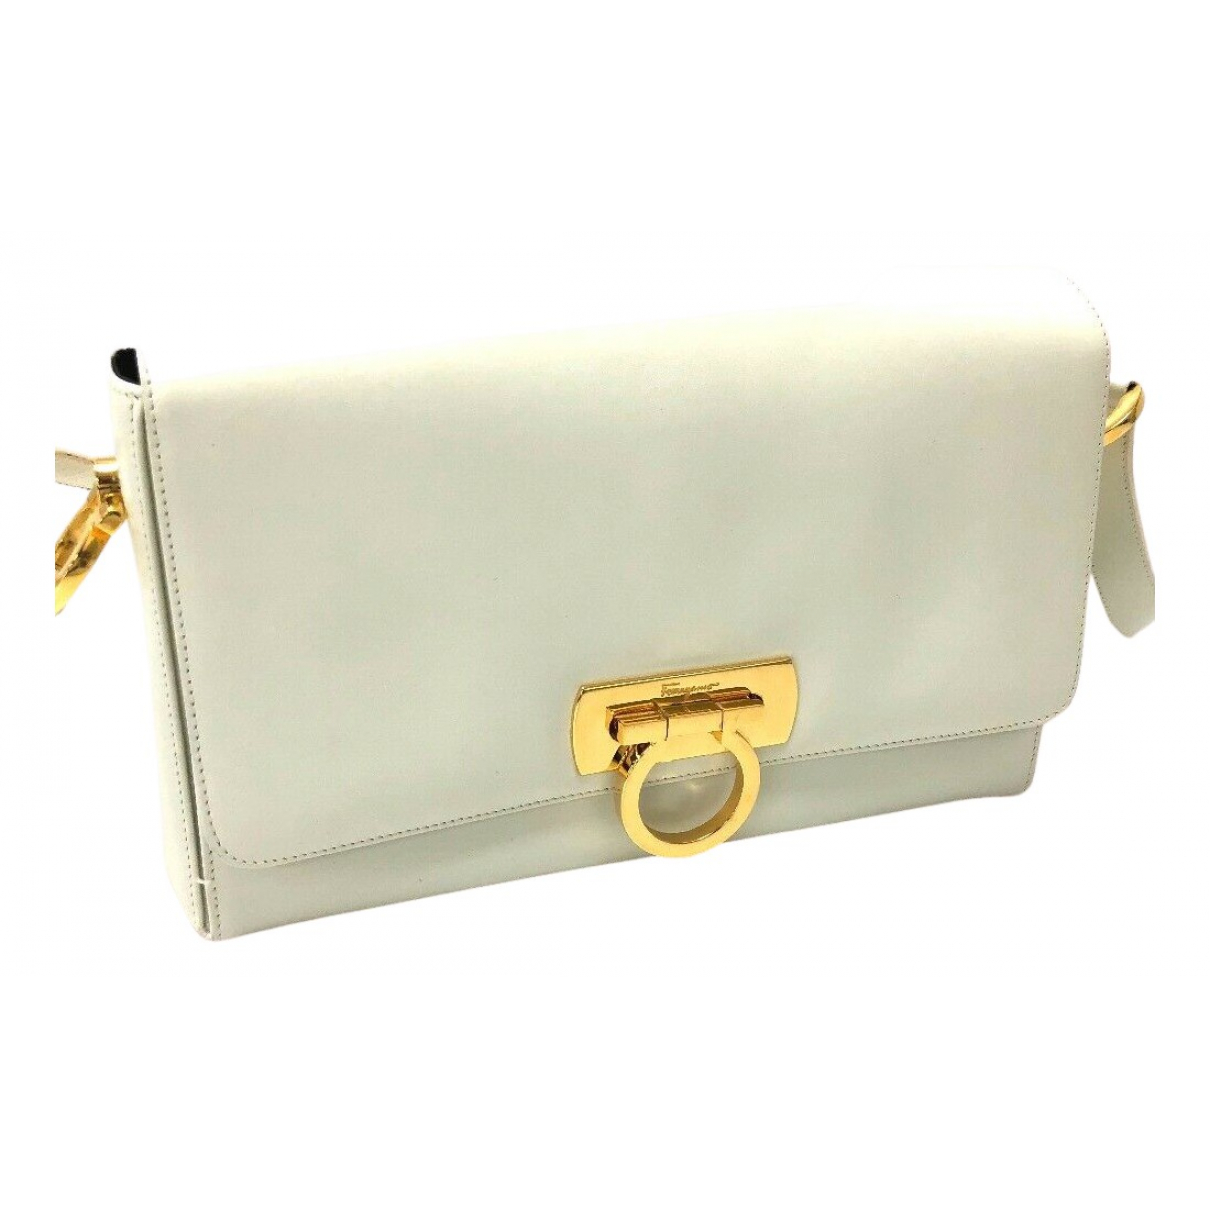 Salvatore Ferragamo N White Leather handbag for Women N